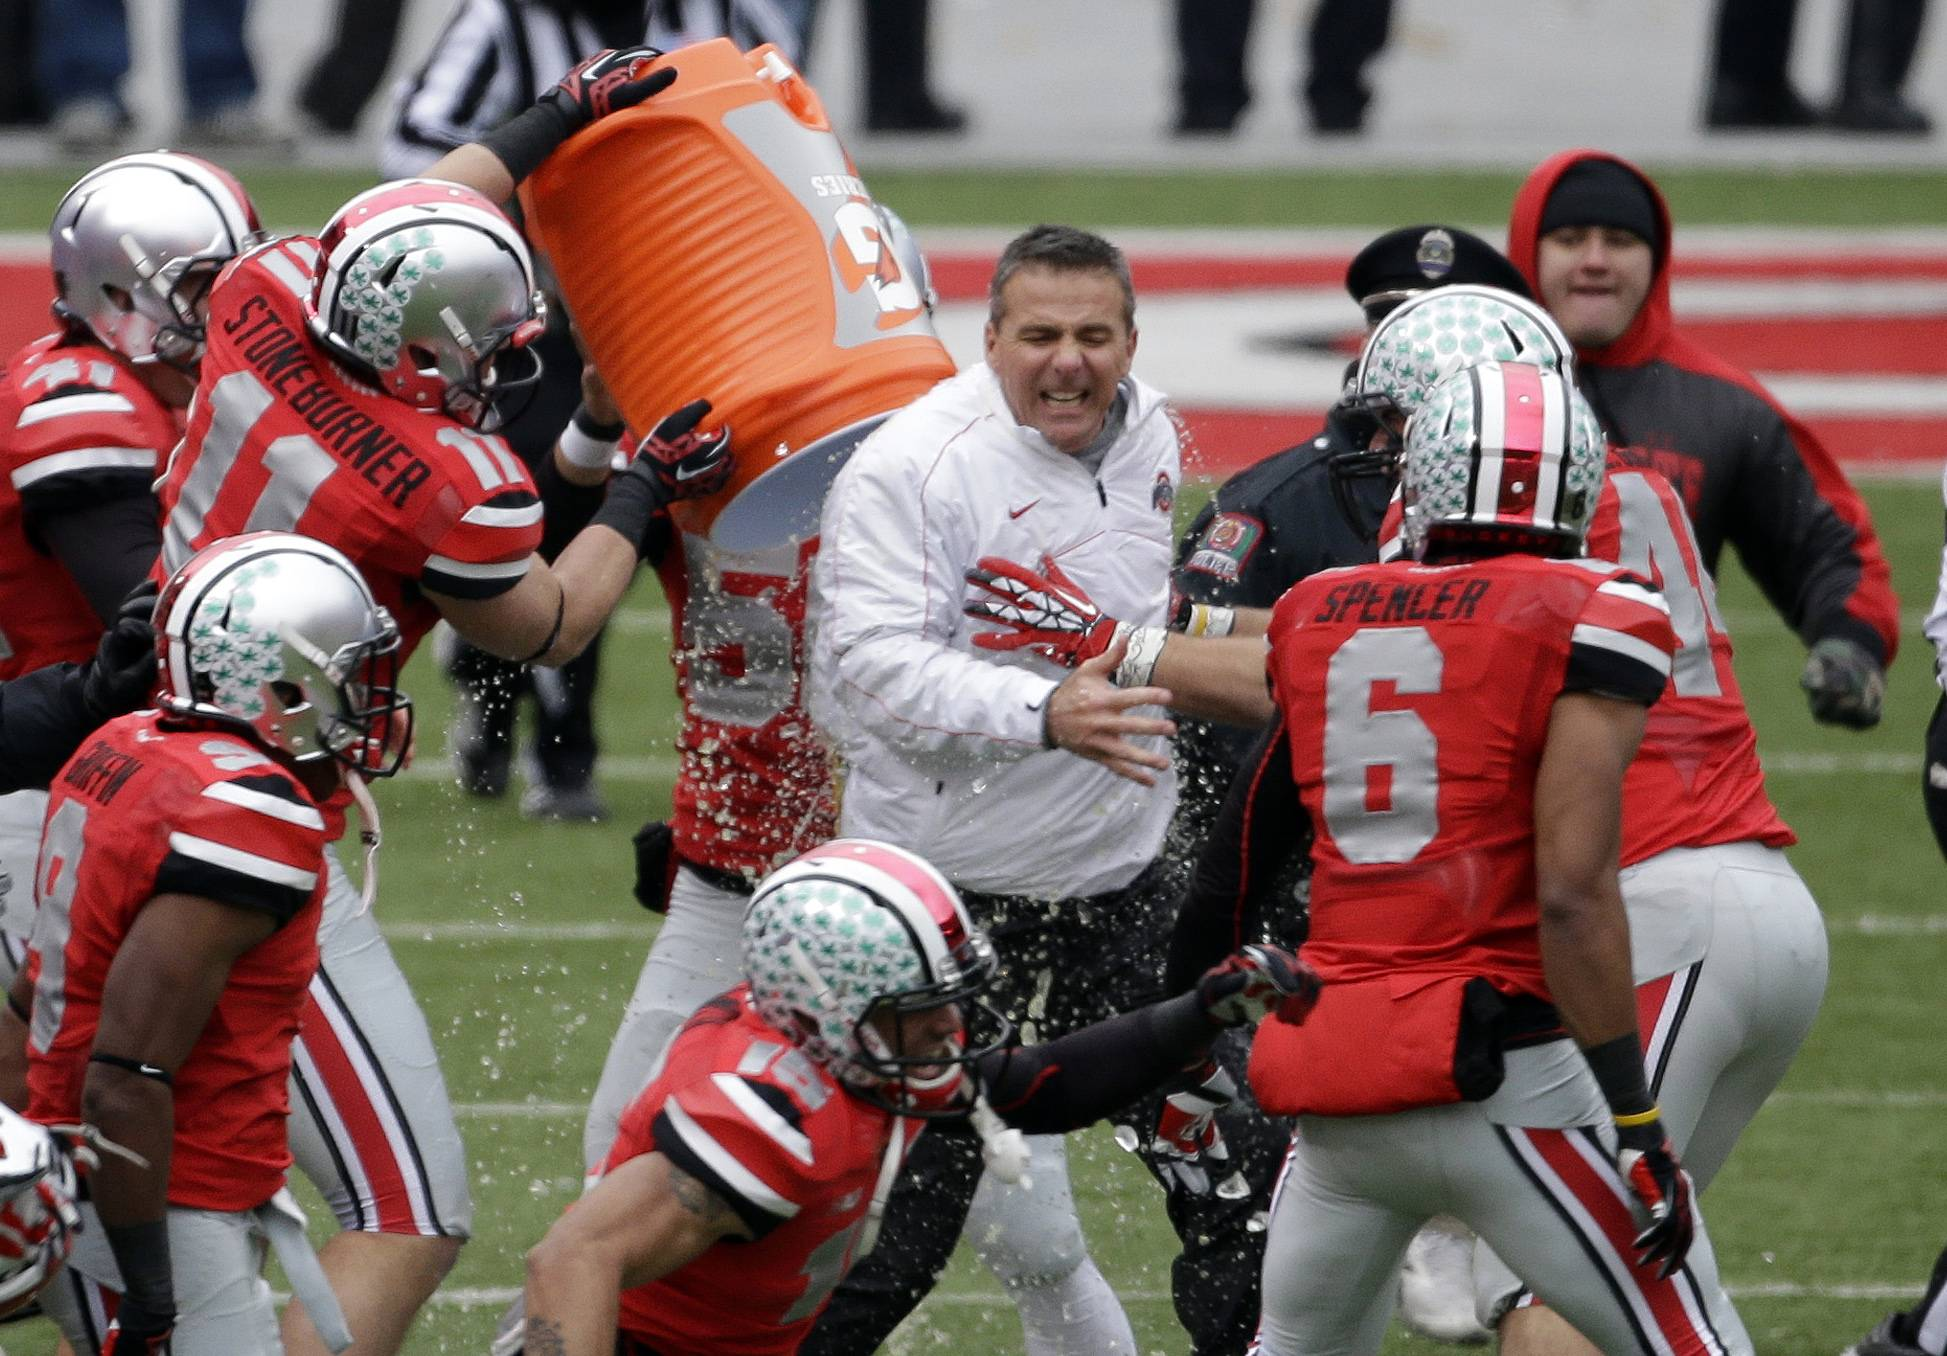 Ohio State head coach Urban Meyer, center, gets doused by senior wide receiver Jake Stoneburner (11) Saturday after a 26-21 win over Michigan in Columbus, Ohio.